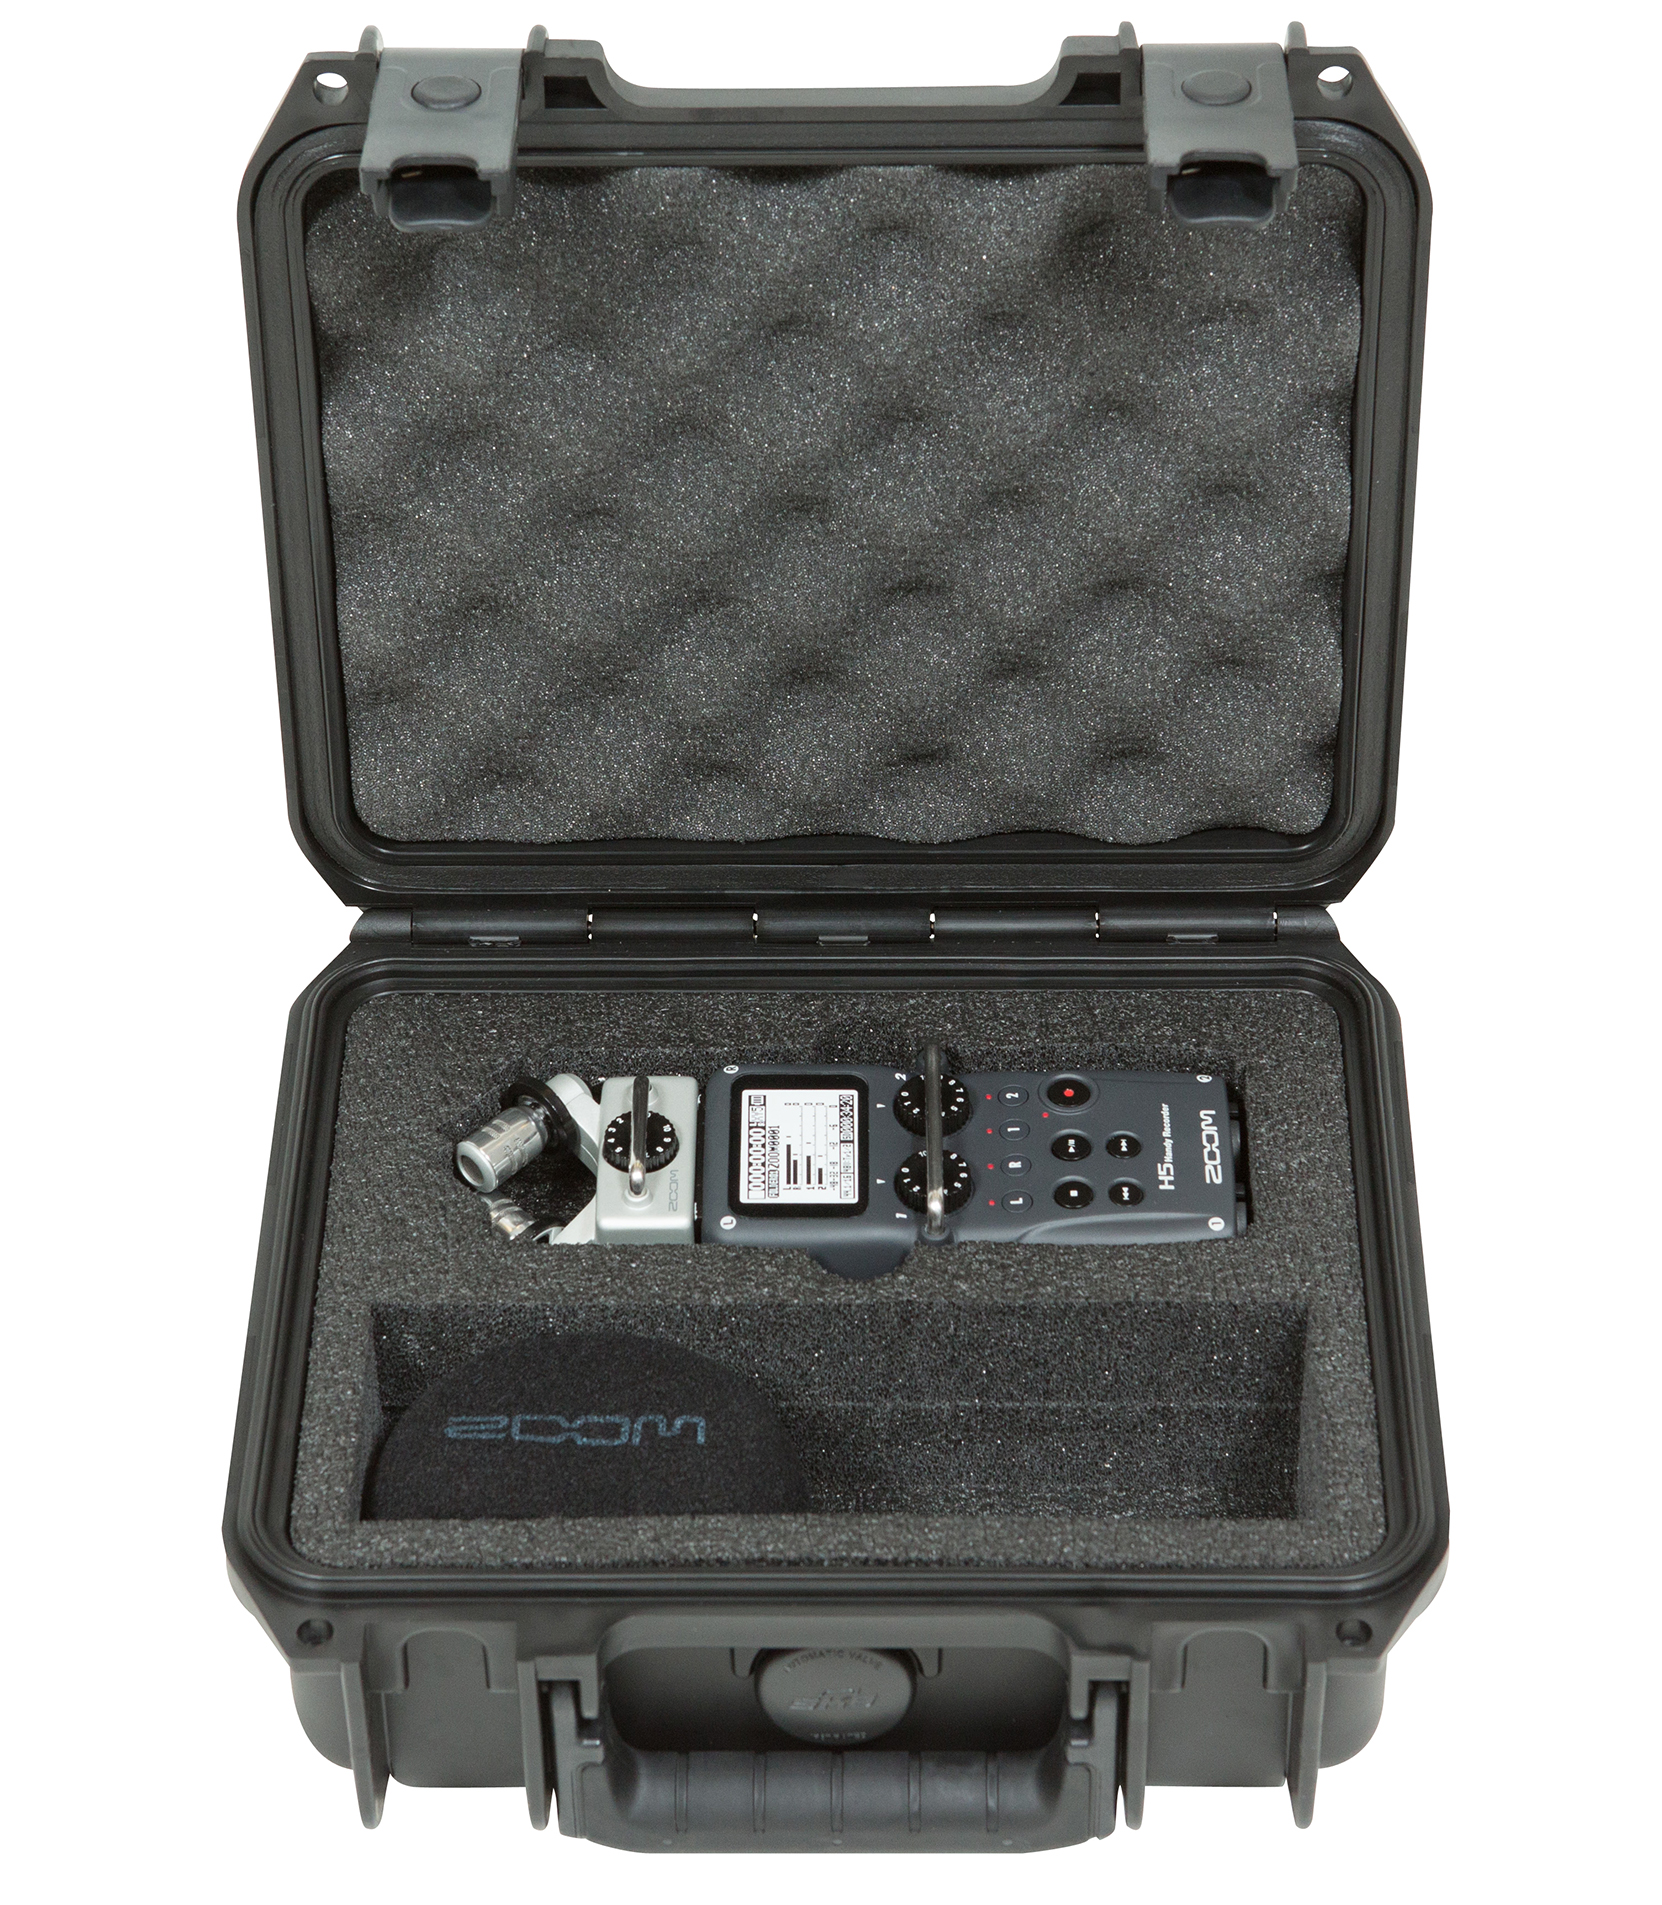 buy skb 3i 0907 4 h5 injection molded case for zoom h5 re